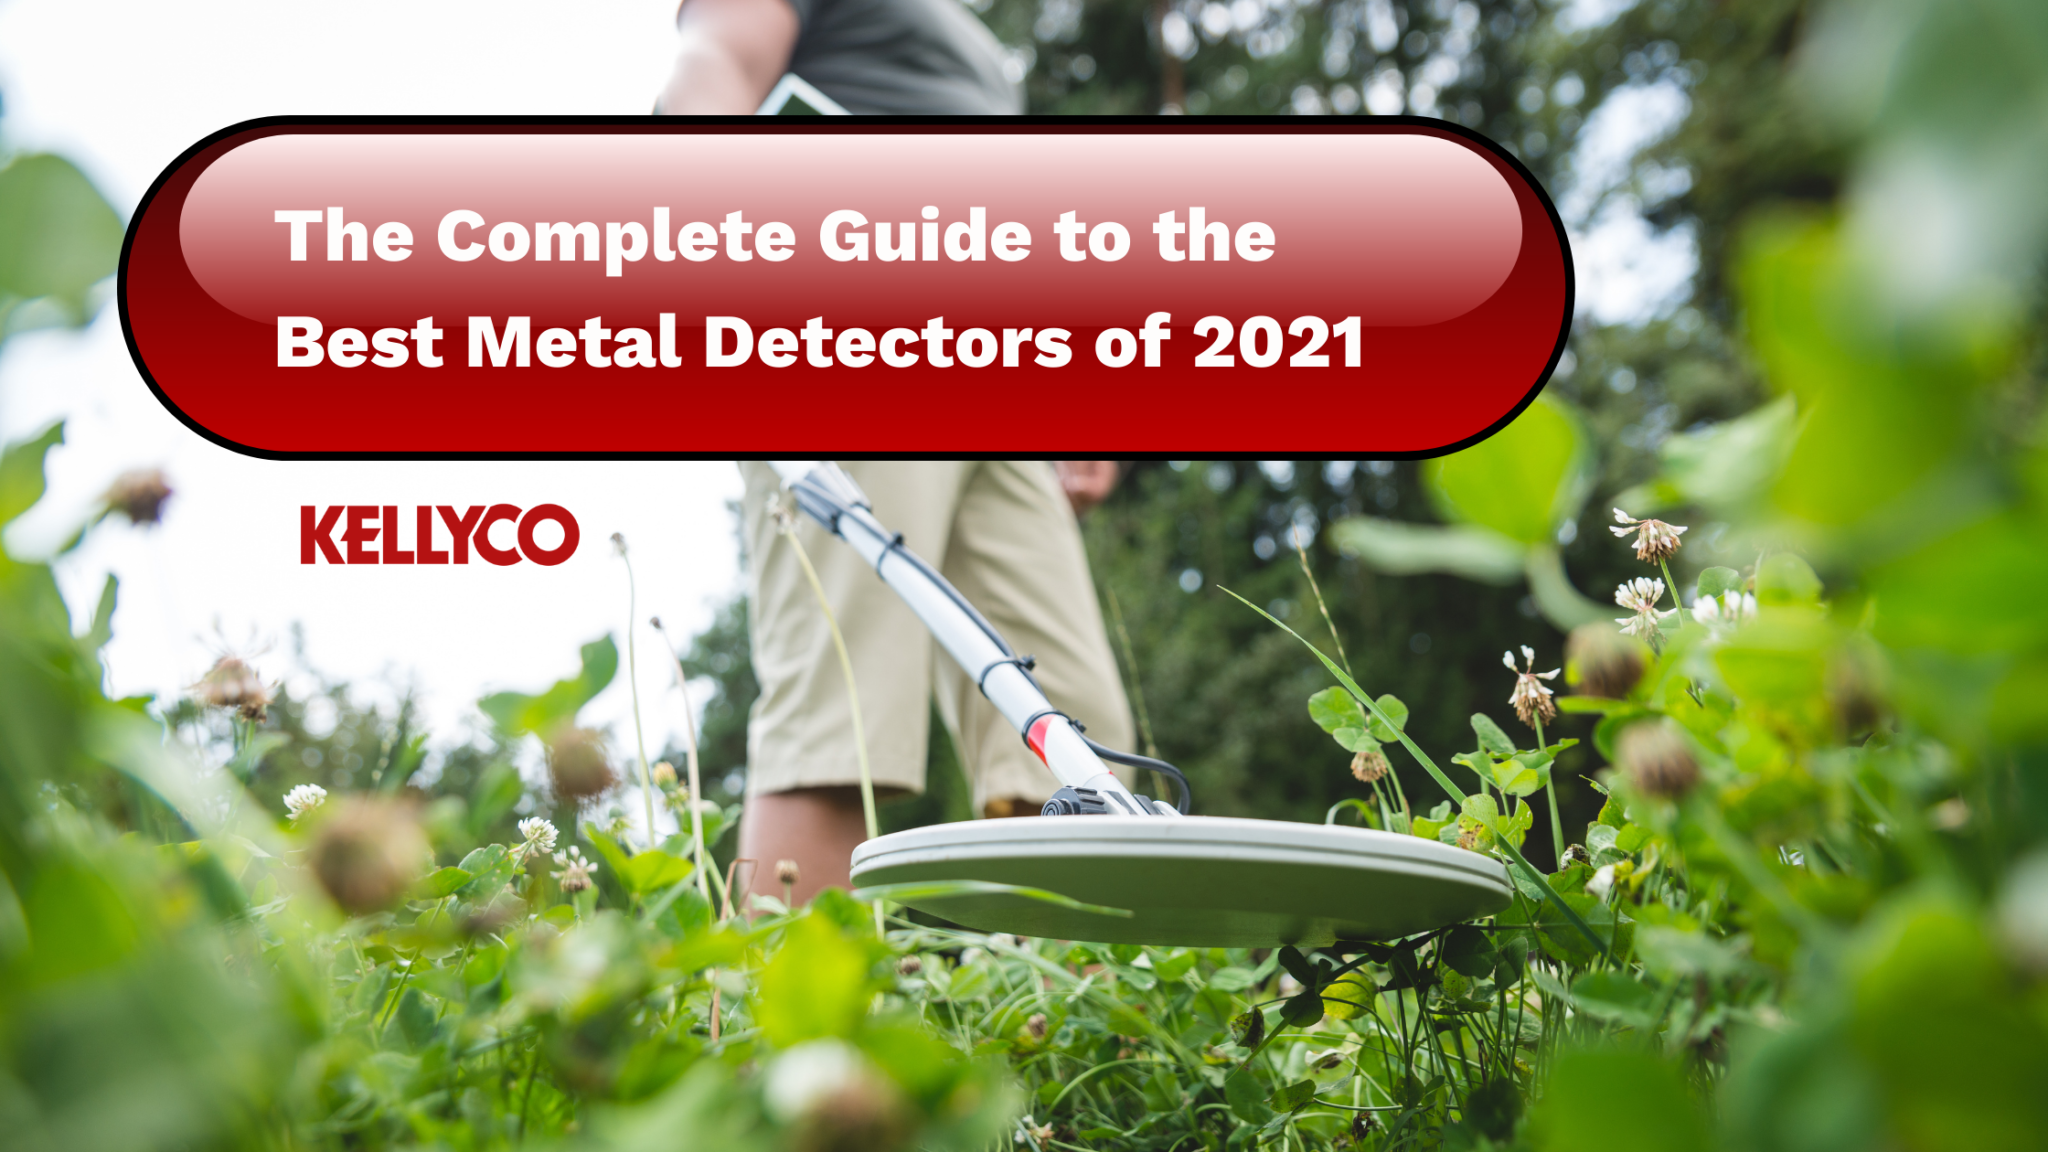 The Complete Guide to the Best Metal Detectors of 2021